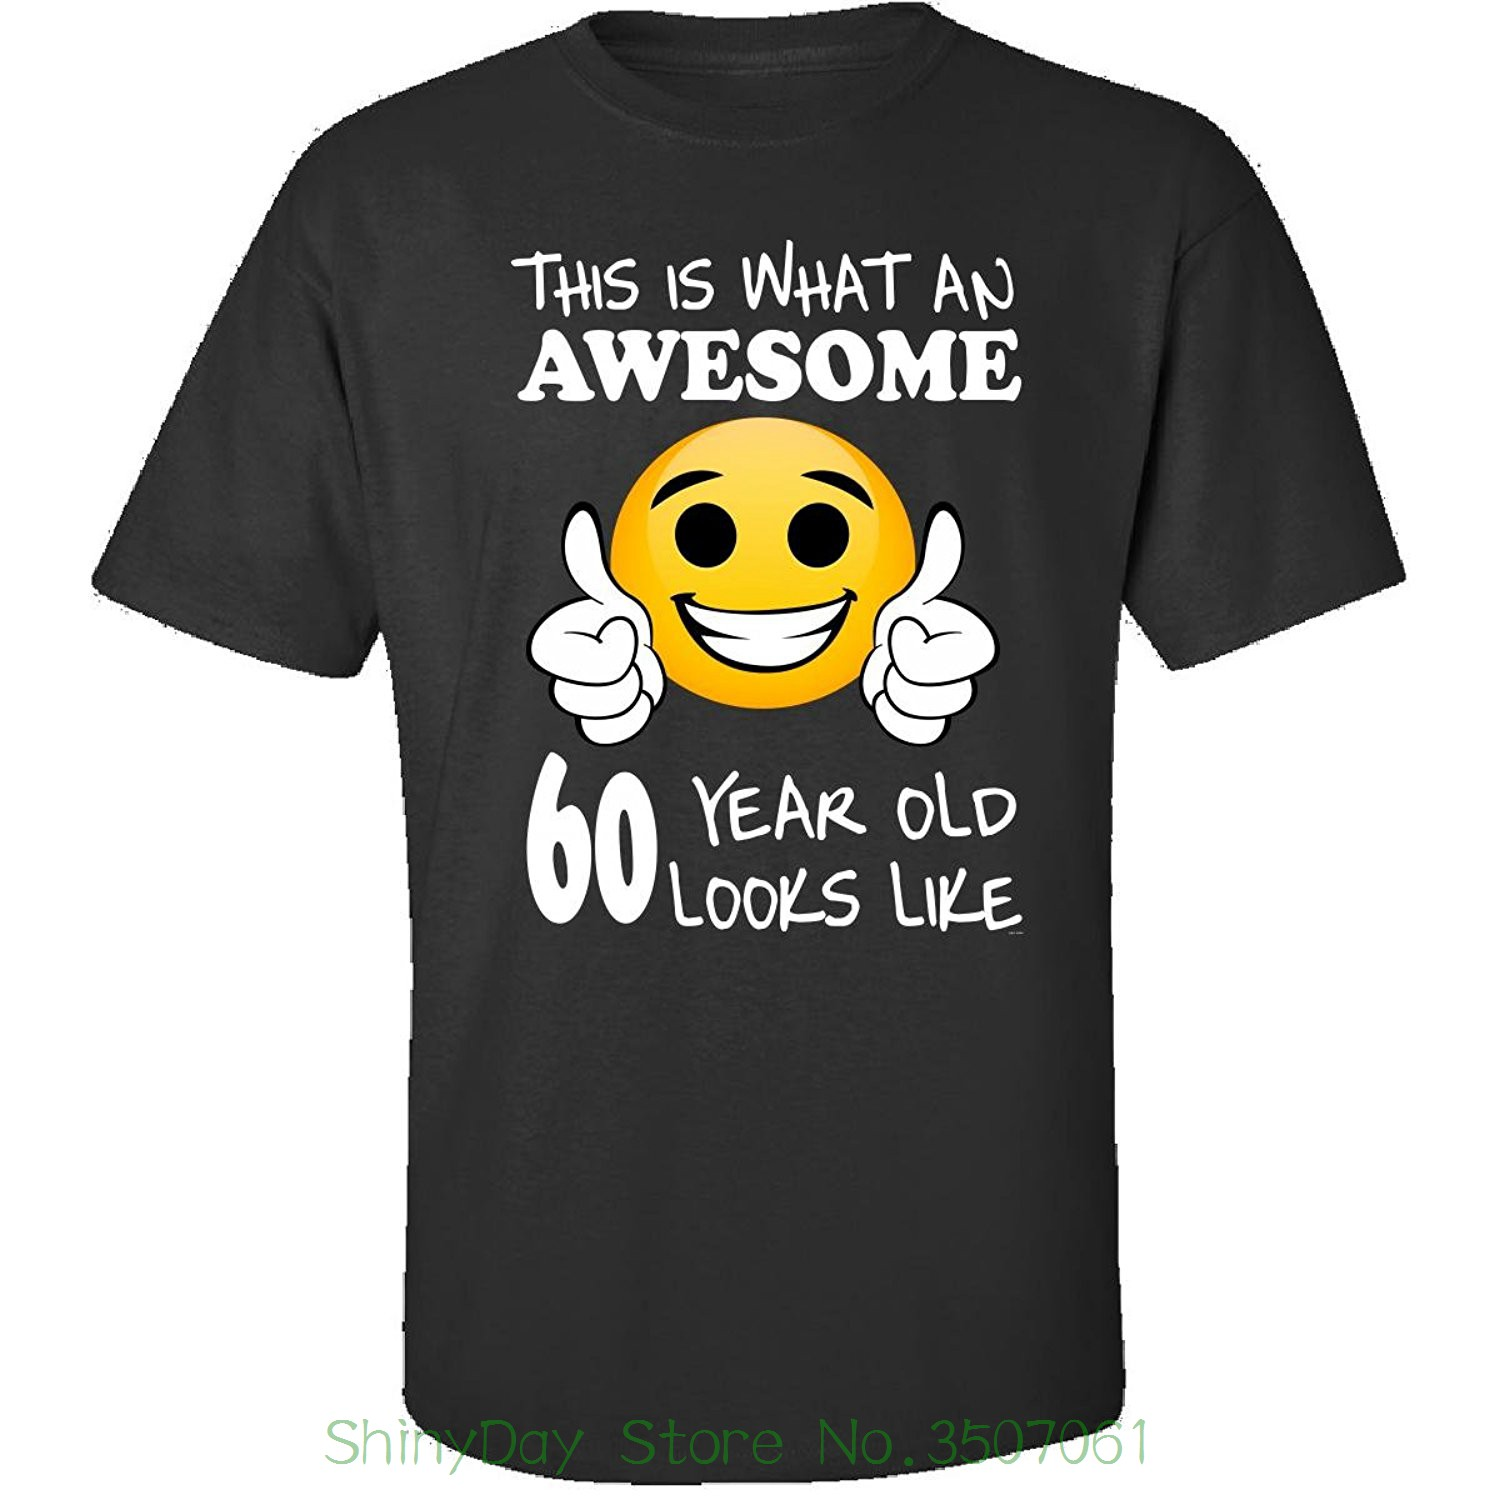 Buy Birthday Present For 60 Year Old Man And Get Free Shipping On AliExpress